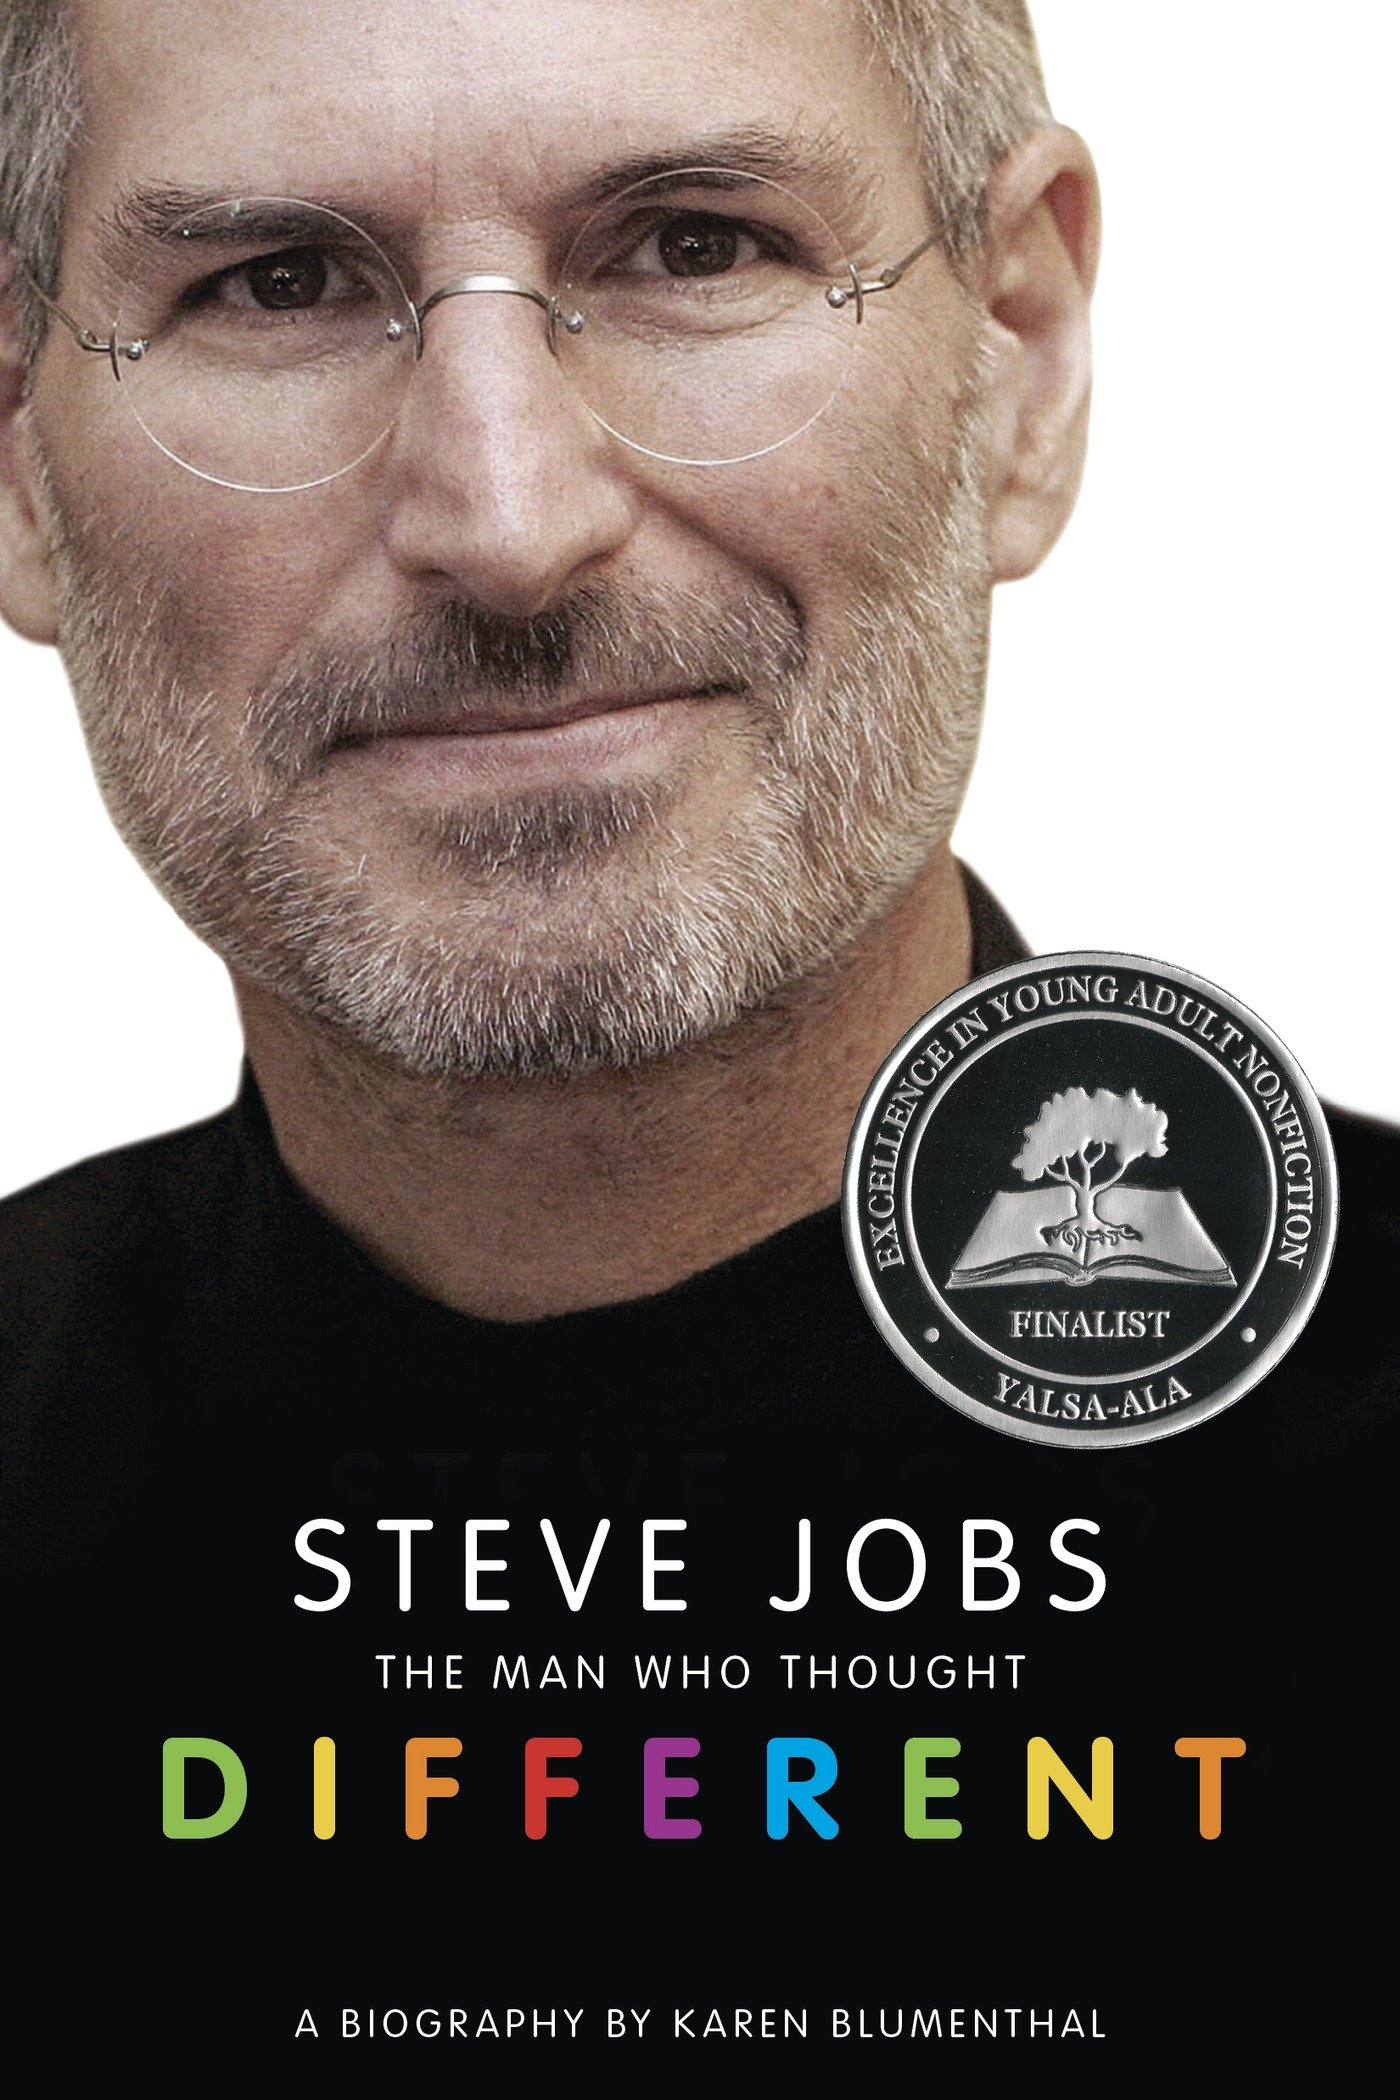 steve jobs the man who thought different a biography karen  steve jobs the man who thought different a biography karen blumenthal 8601423280745 amazon com books